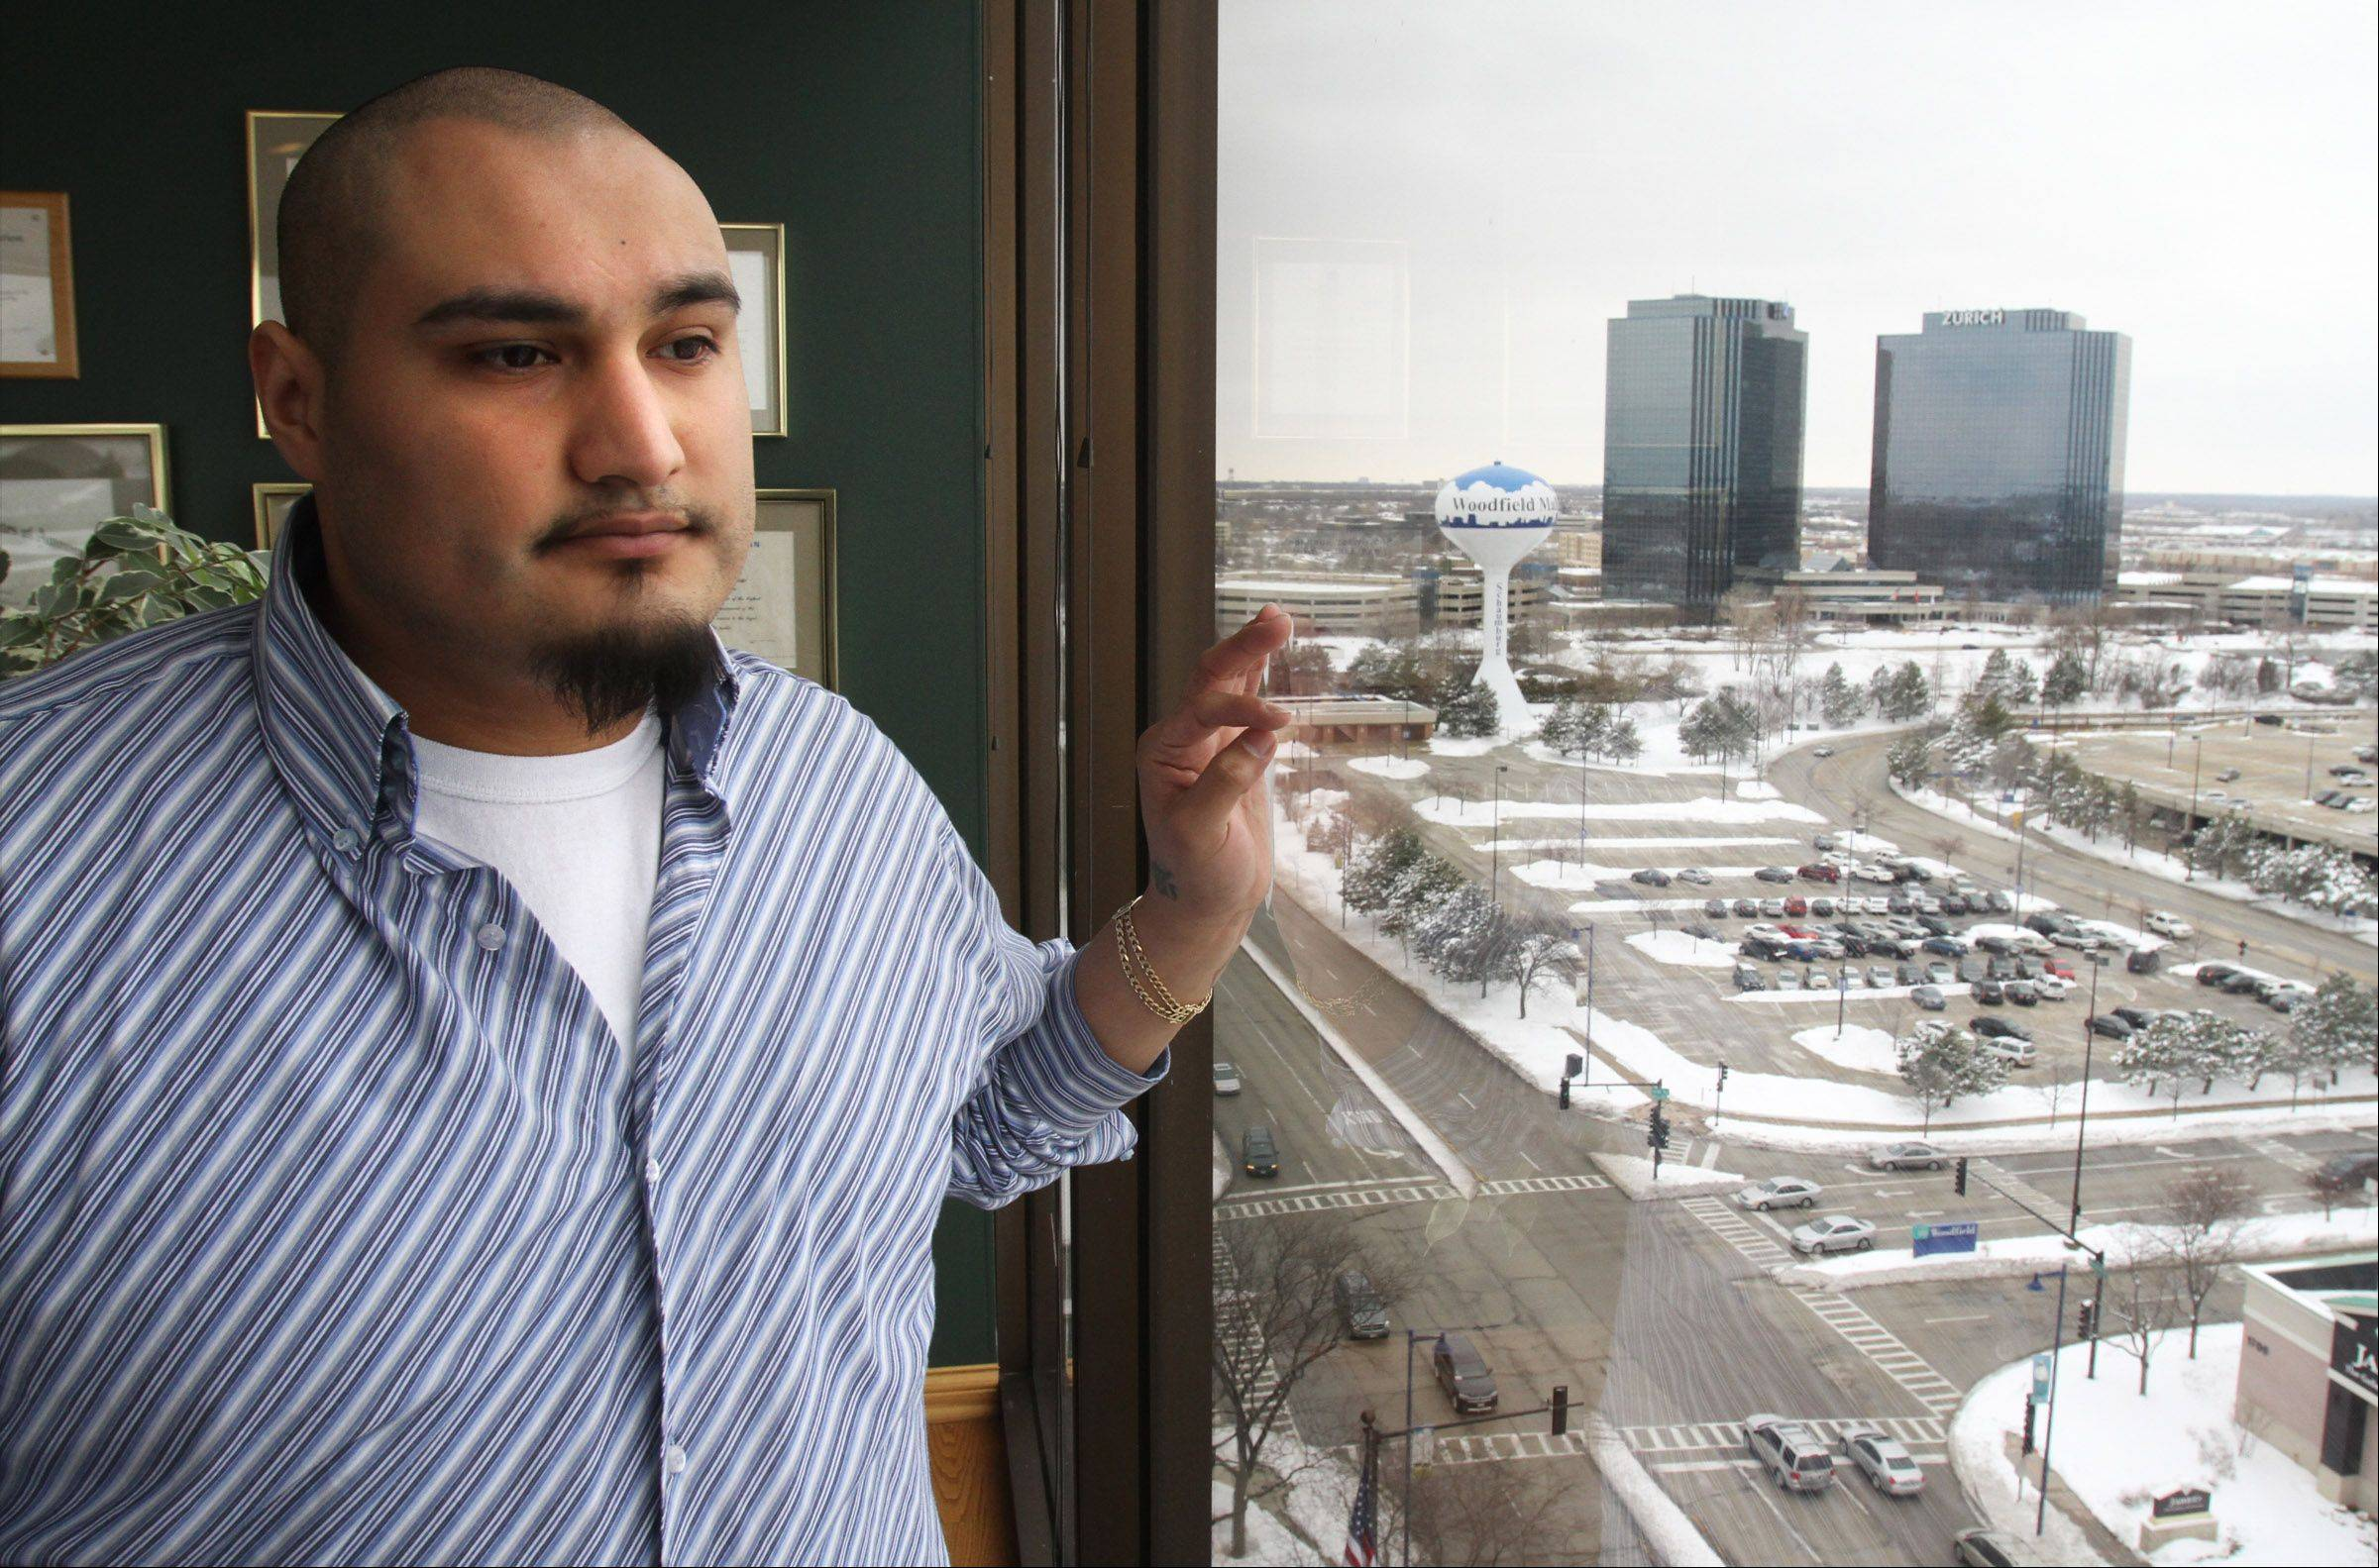 Victor Aguilar-Abazan, 24, says he's grateful for a second chance after drug charges against him were dismissed in the wake of the arrests of three former Schaumburg undercover officers.